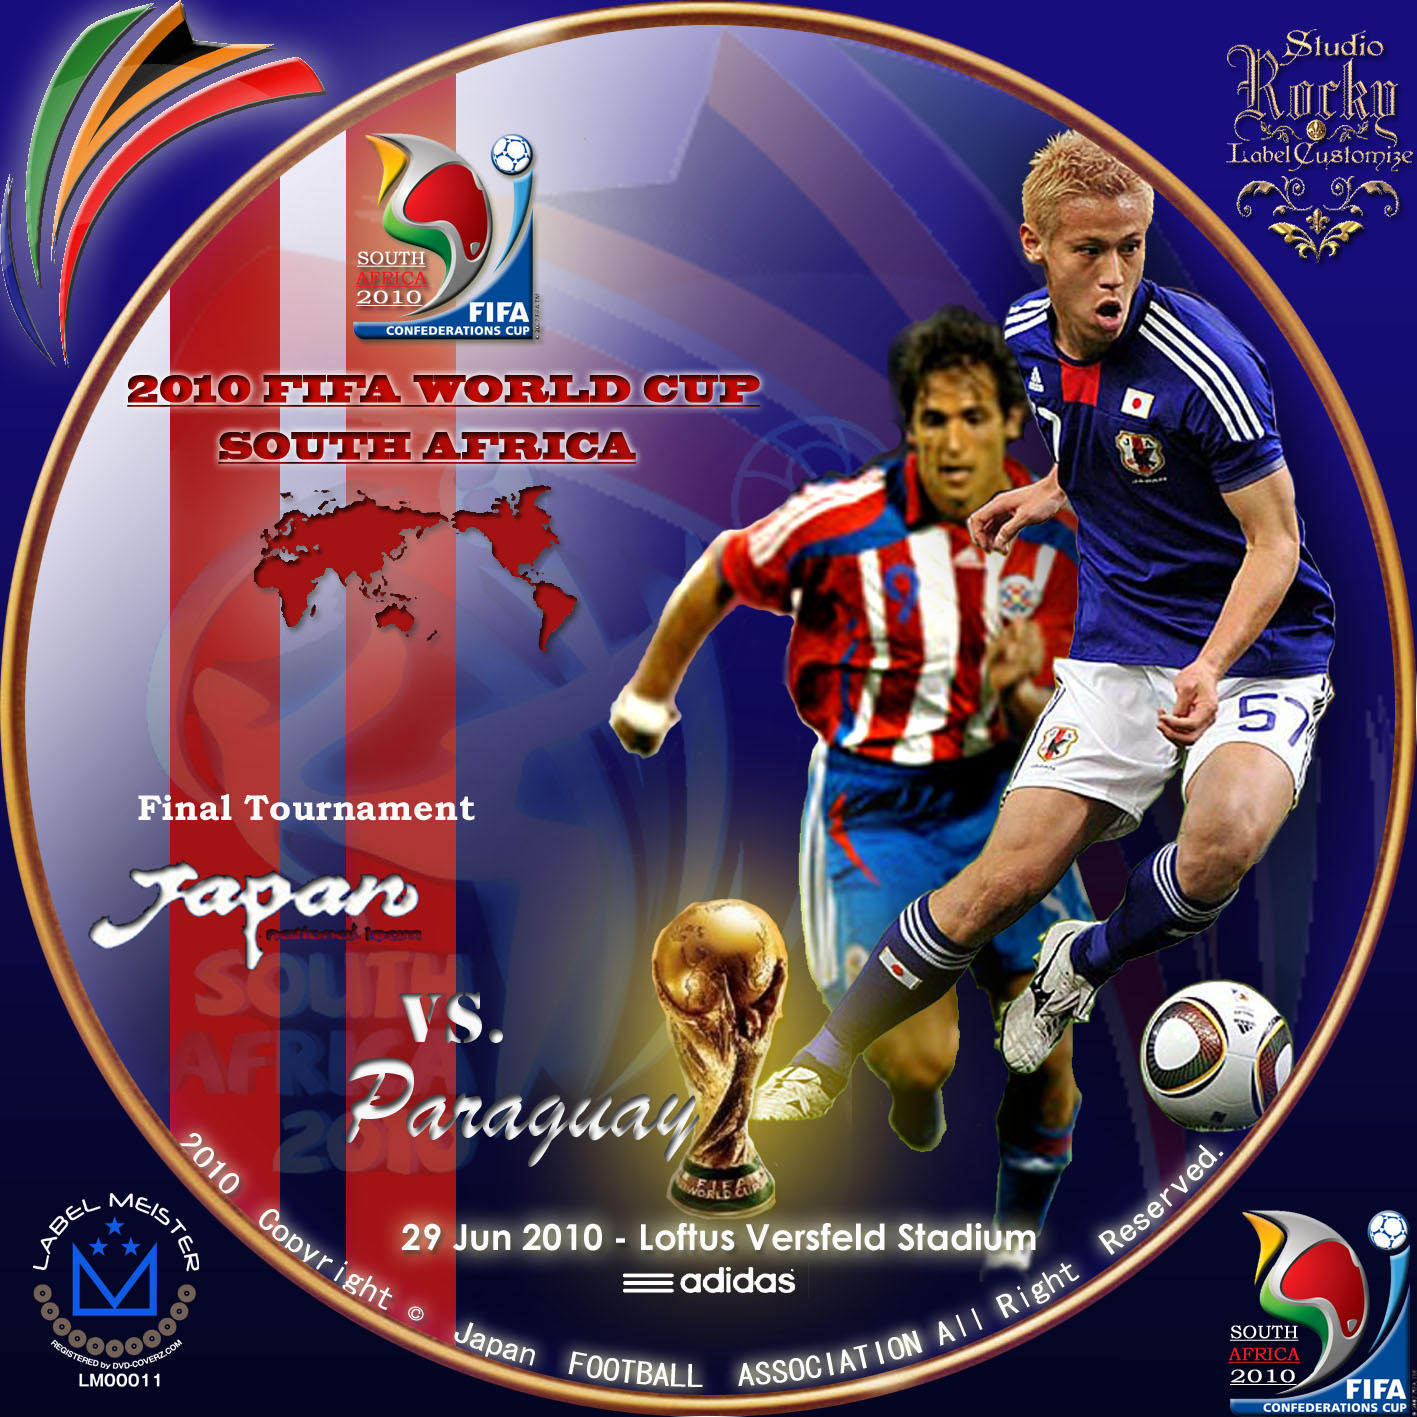 2010 FIFA World Cup South Africa Japan vs Paraguay